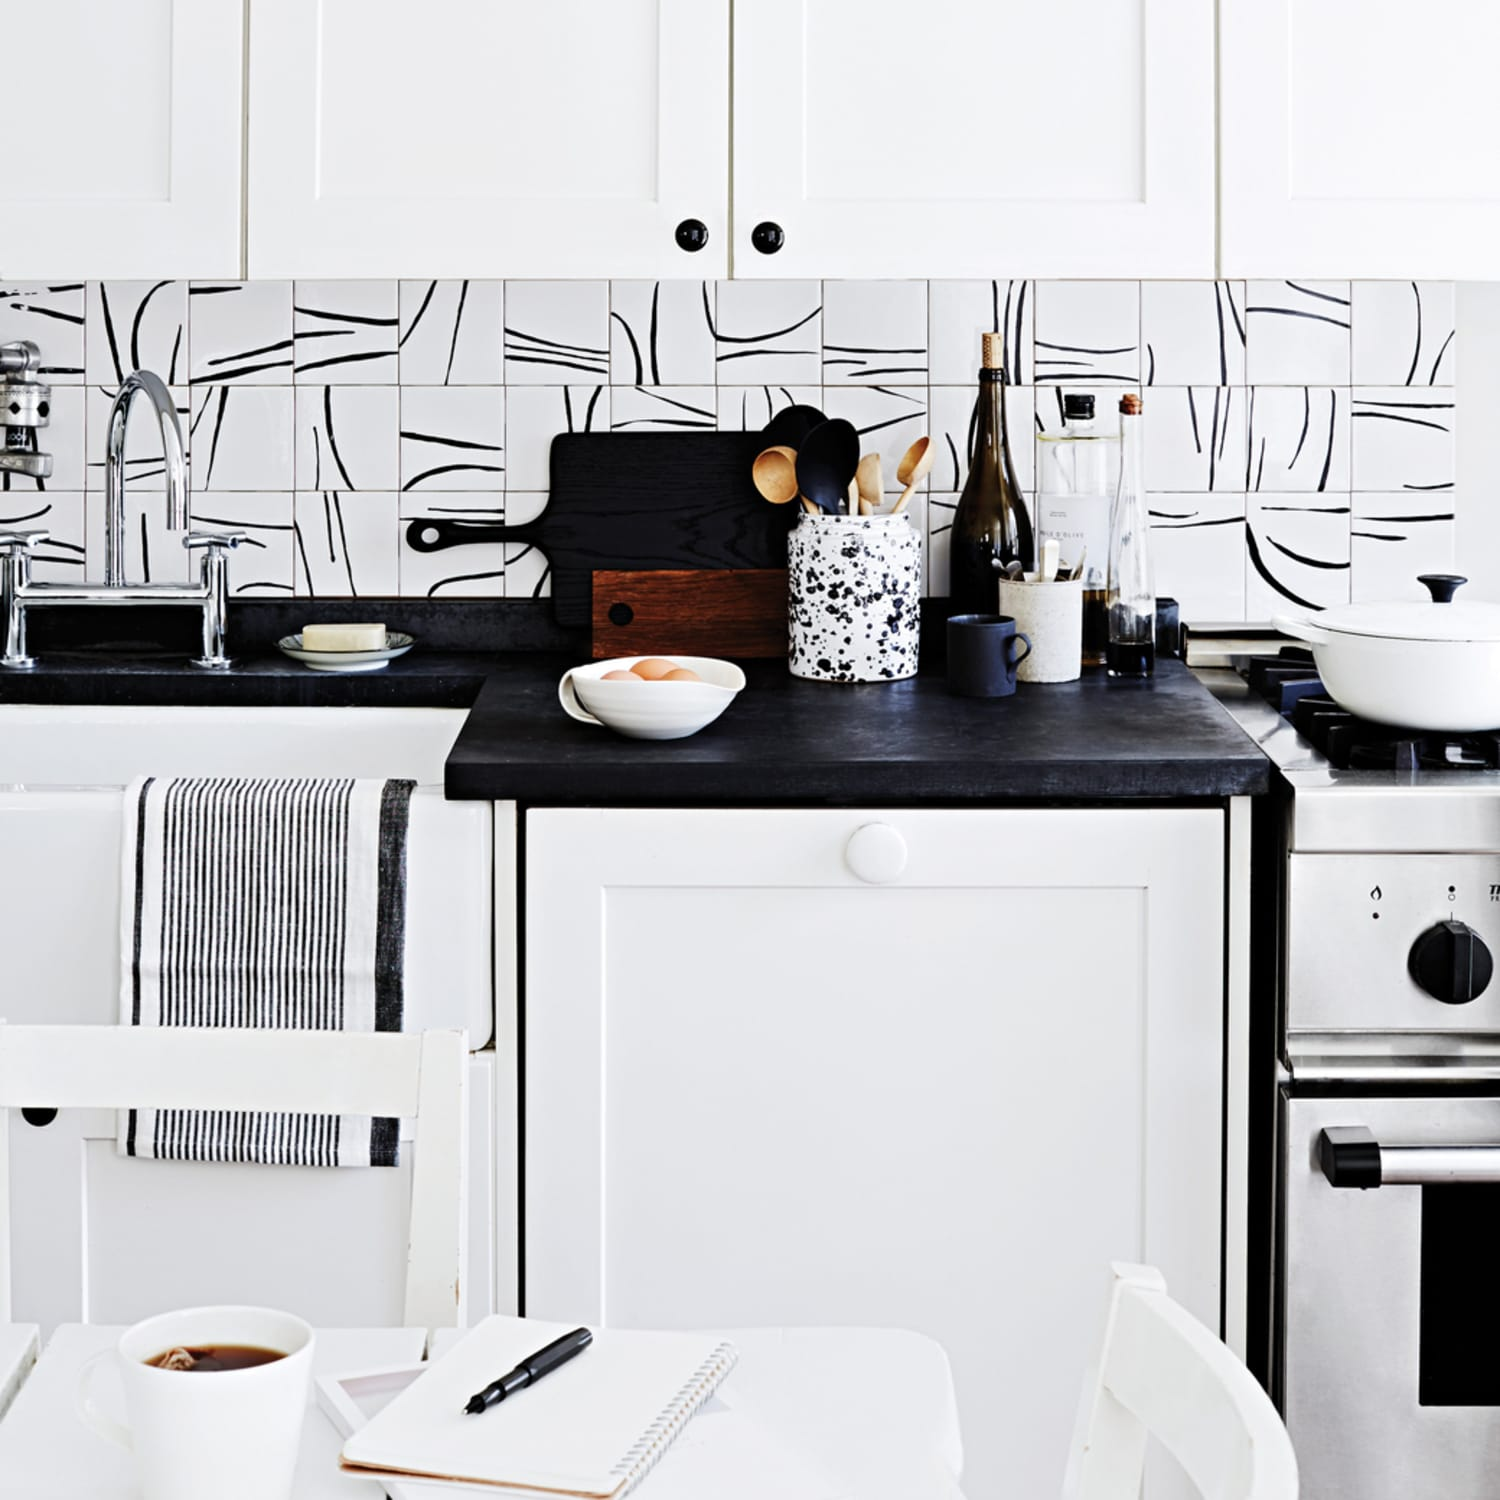 - Tile Transformations: Easy Ways To Update Your Kitchen Backsplash